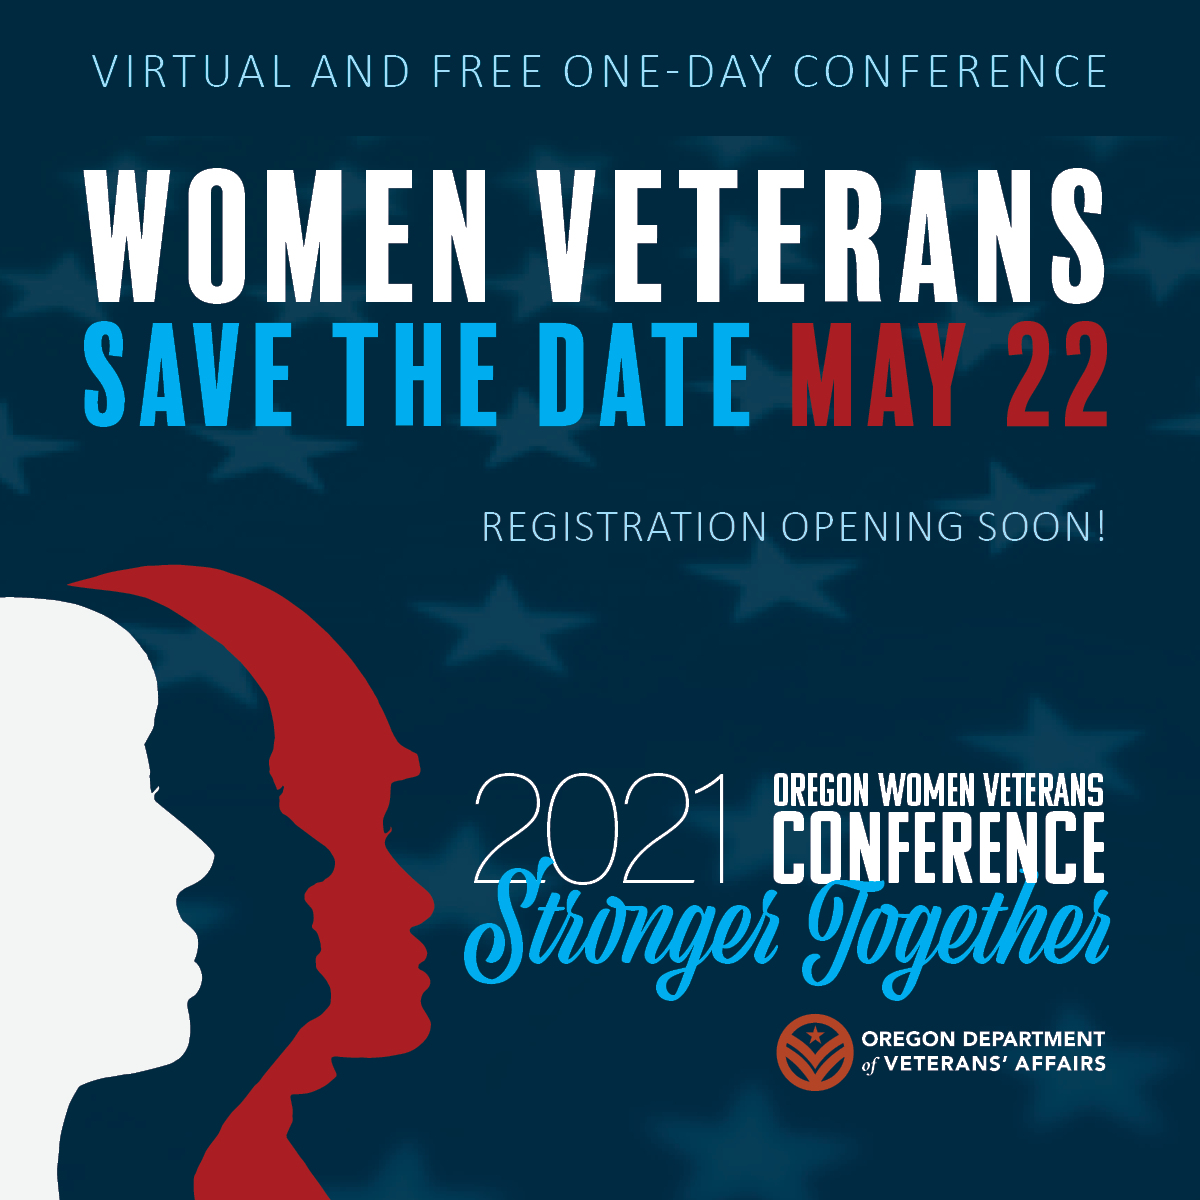 ODVA – Oregon Department of Veterans' Affairs – Save the Date – Virtual and Free Woman Veterans Conference – Saturday May 22